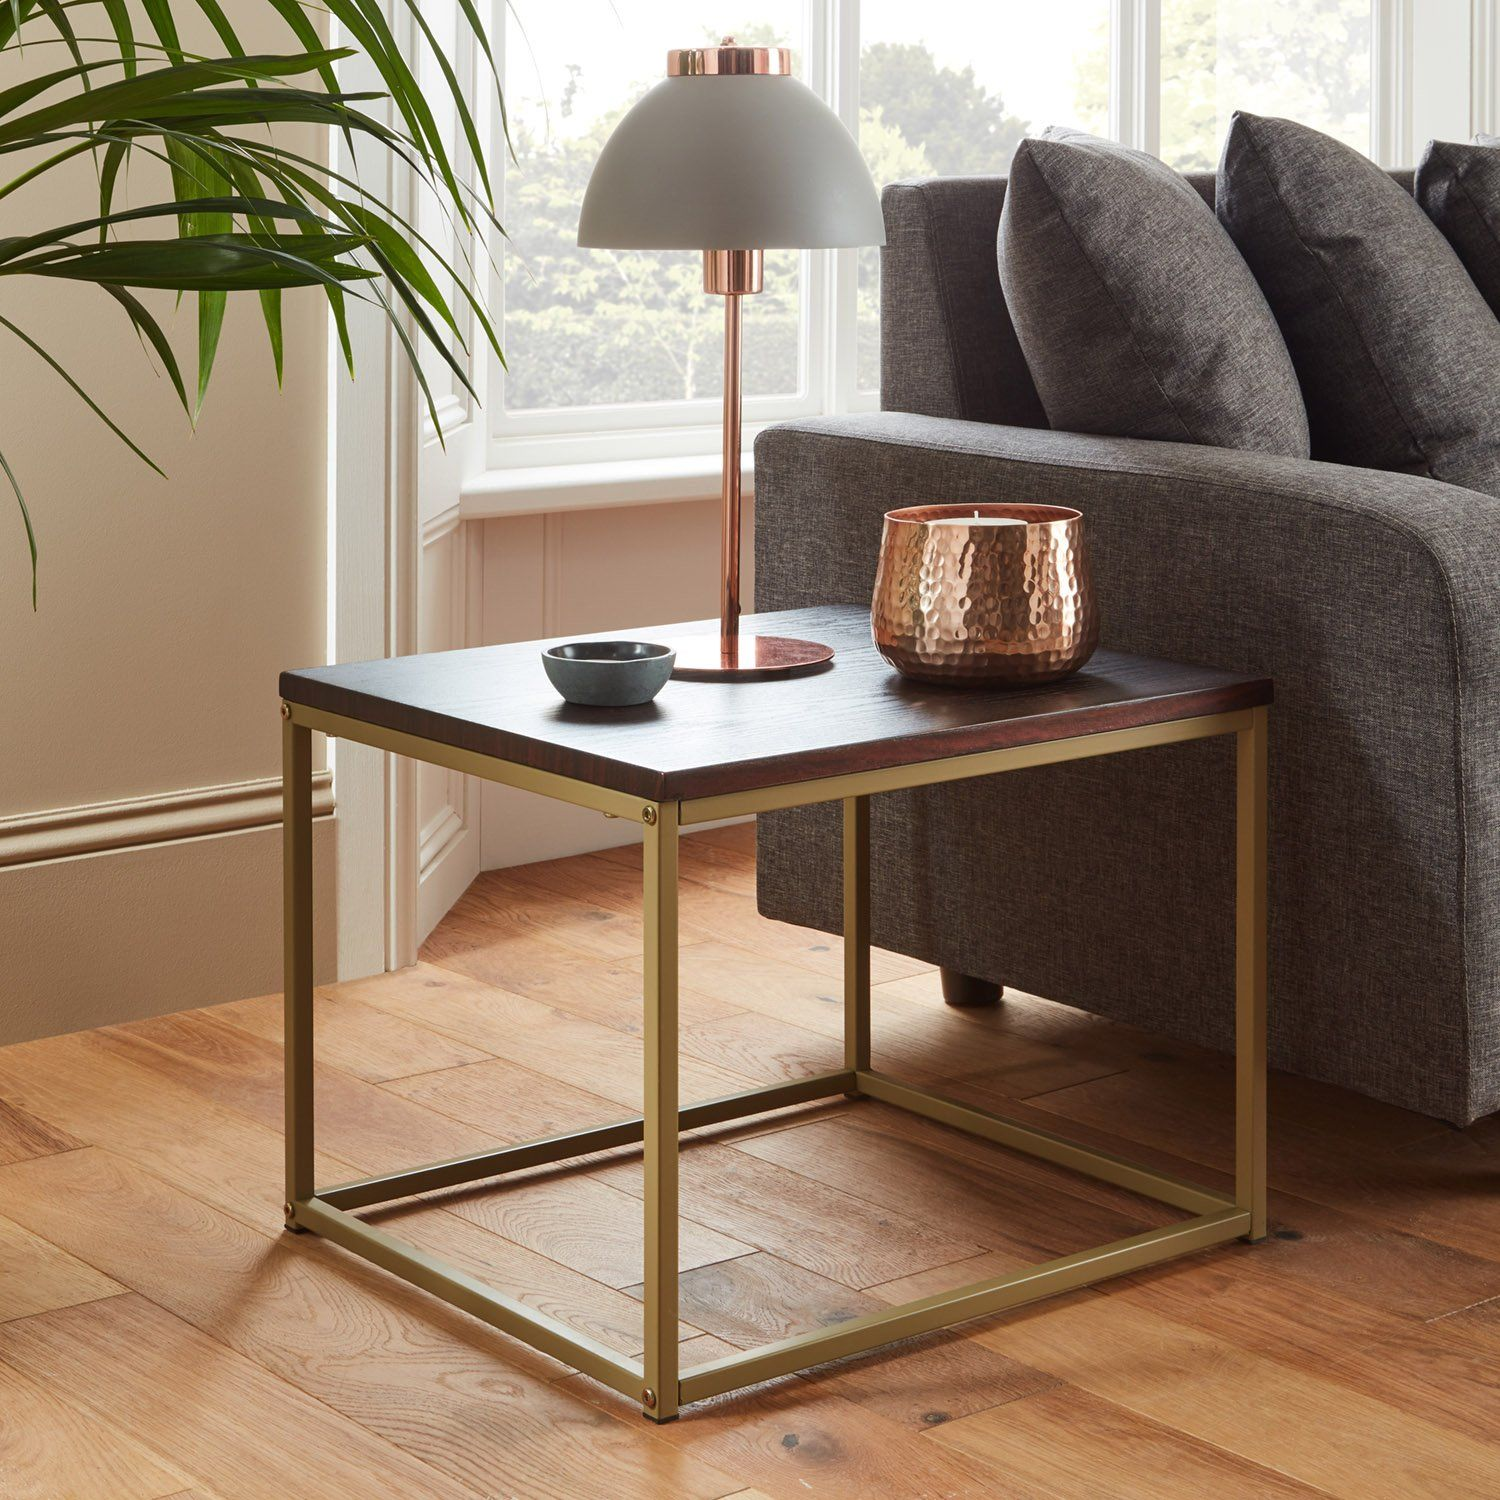 Jay side table - walnut effect and brass - Laura James